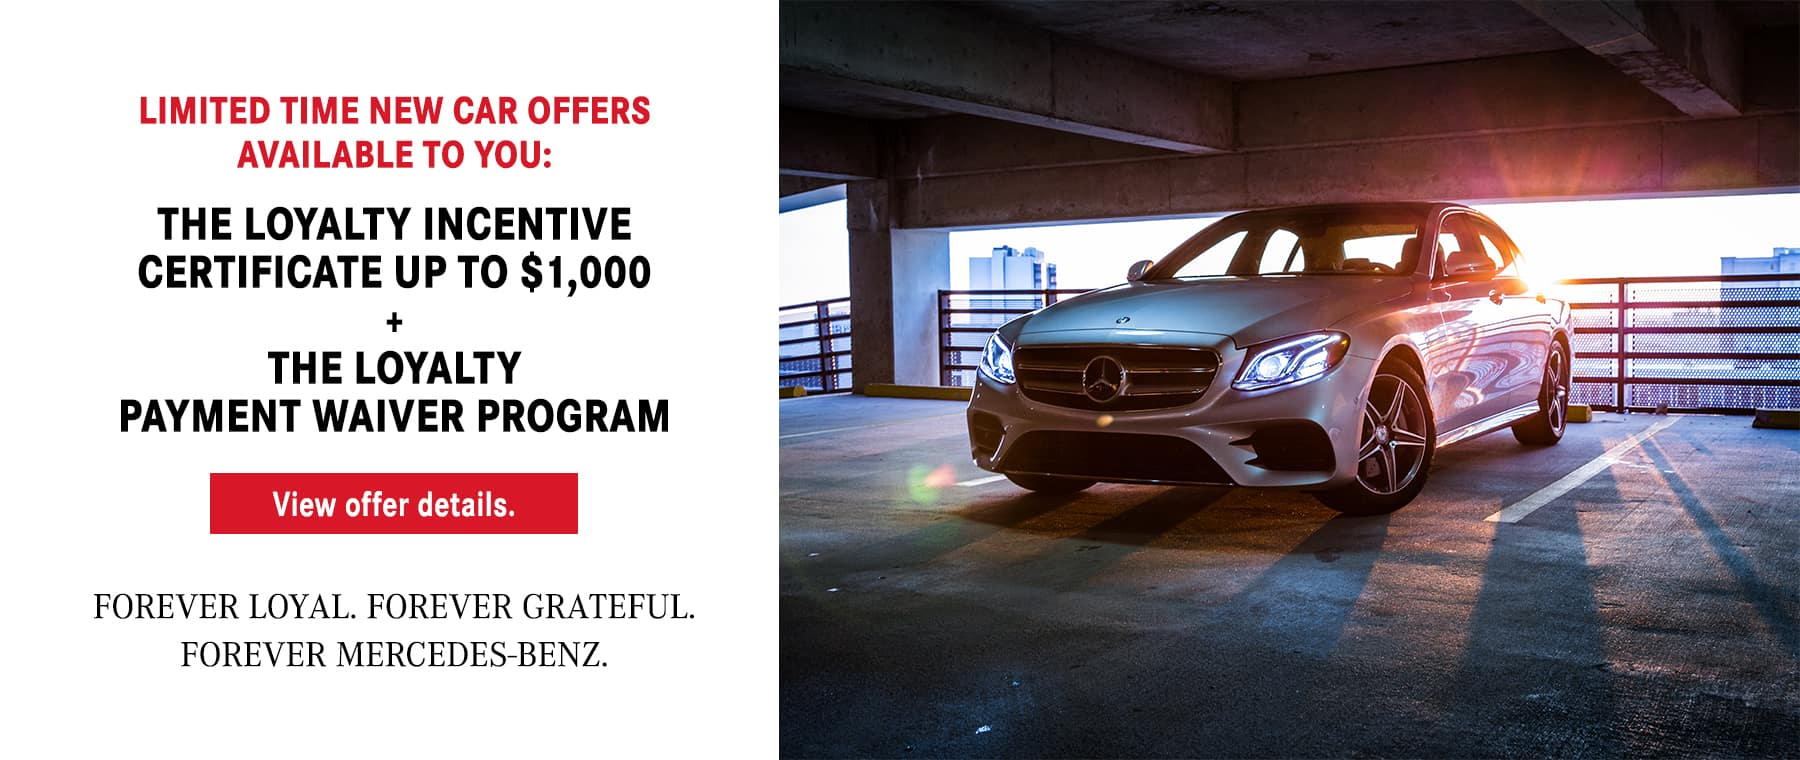 Mercedes Benz Of New Rochelle | Luxury Auto Dealer And Service Center, NY